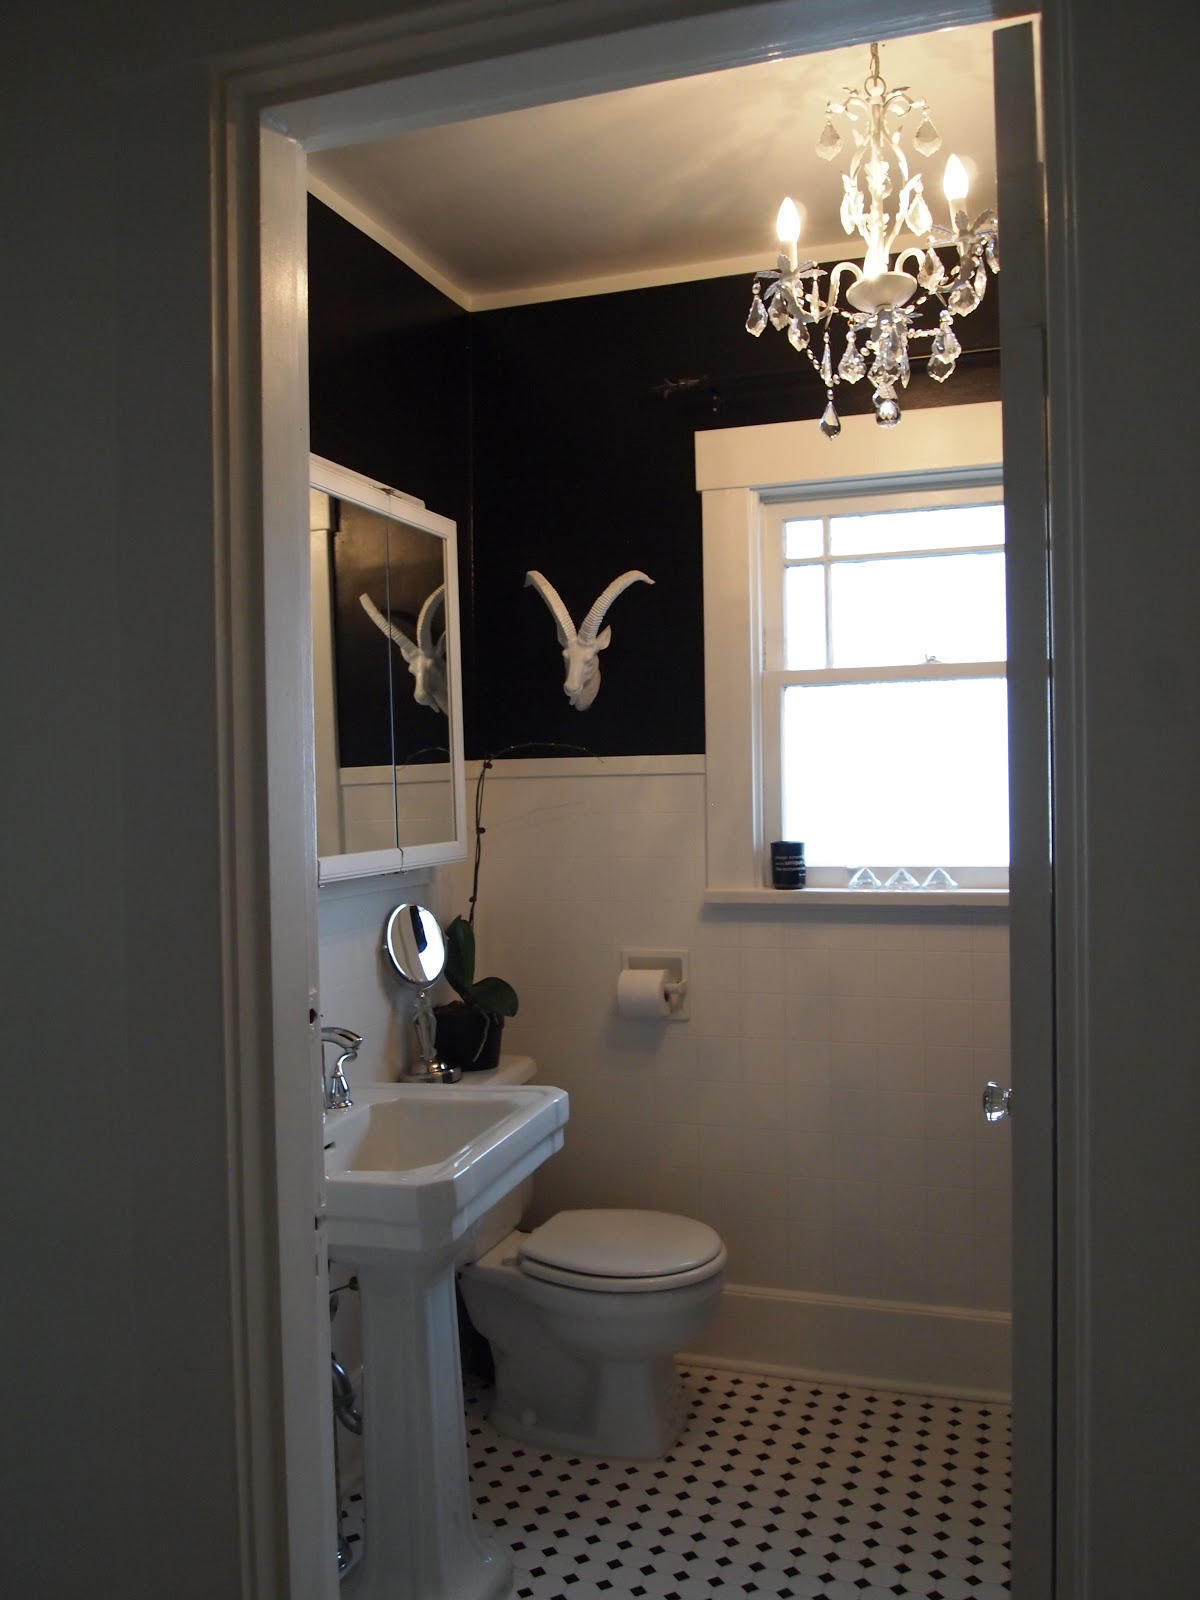 a little black paint a goat head mount and a home depot chandelier and the bathroom looks a bit more updated without any structural changes